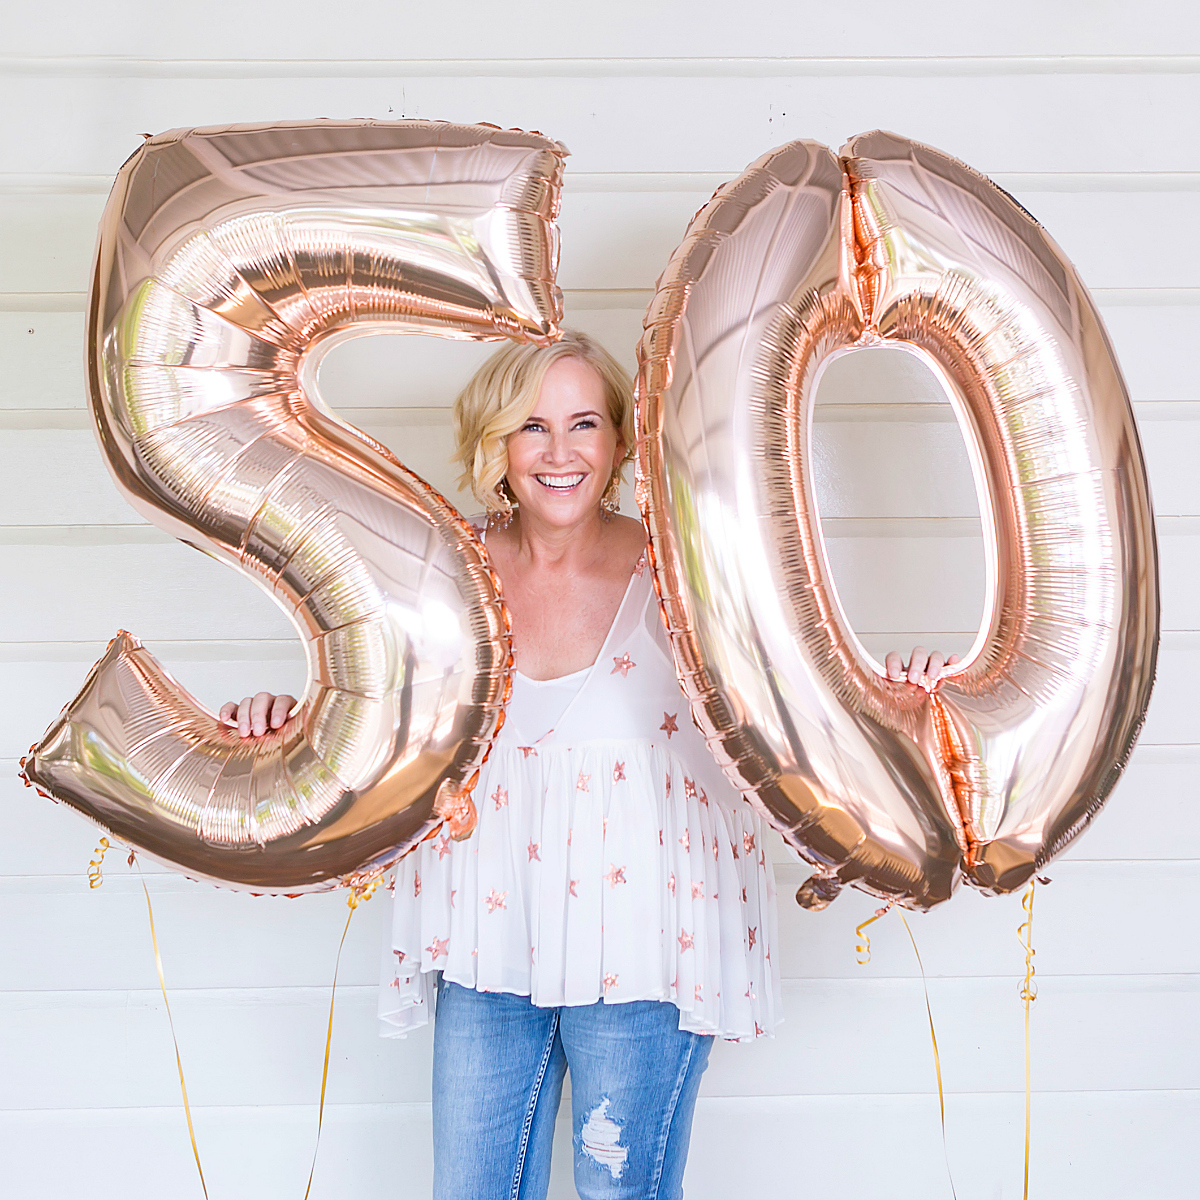 Nikki Parkinson | Styling You | Letter to her 21-year-old self on 50th birthday | Photo by Sarah Keayes/The Photo Pitch